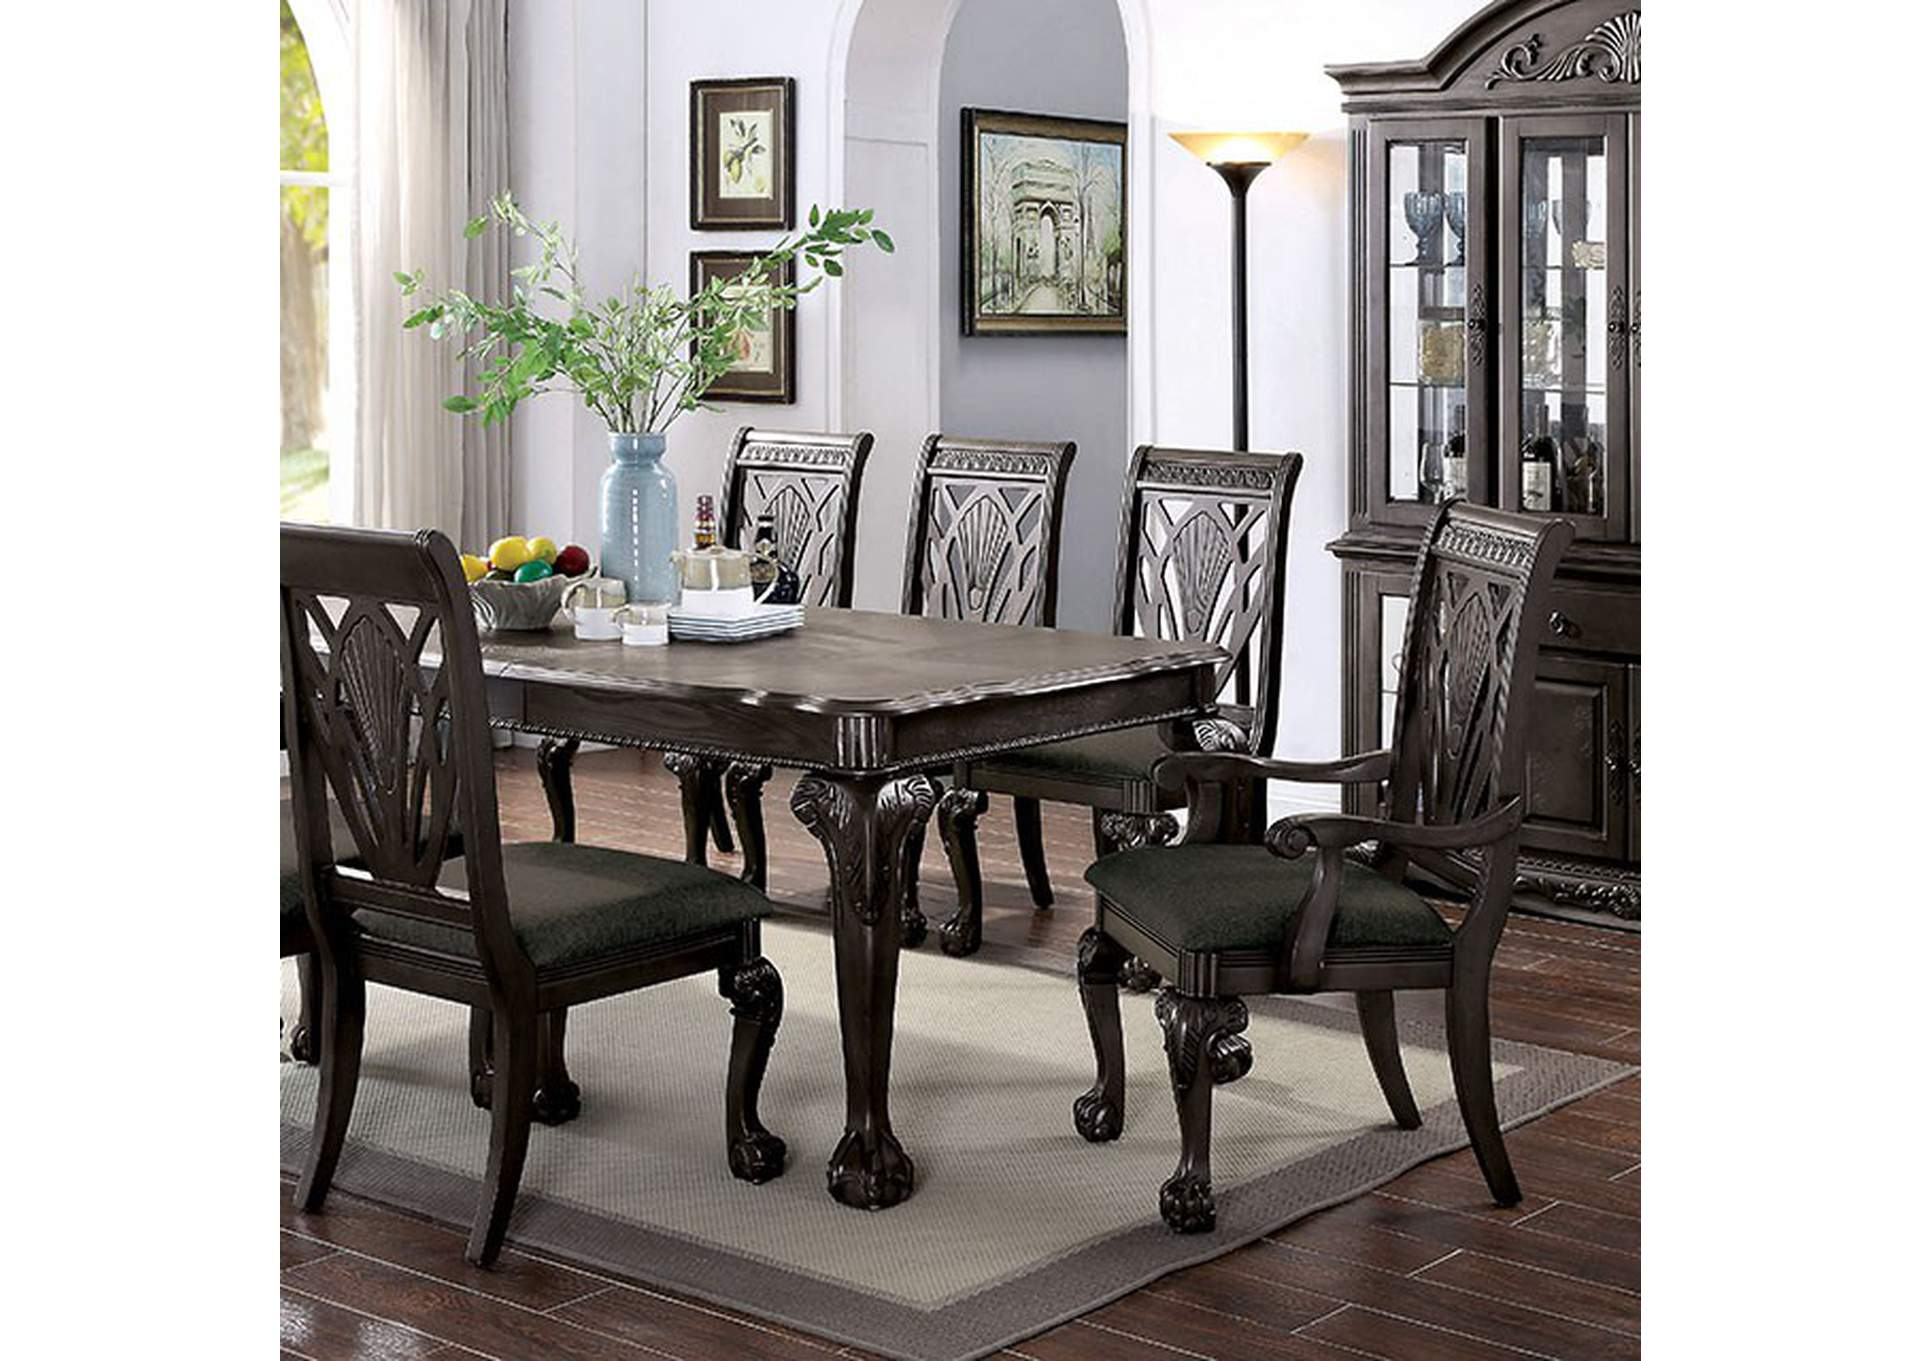 Petersburg Dark Gray Dining Table,Furniture of America